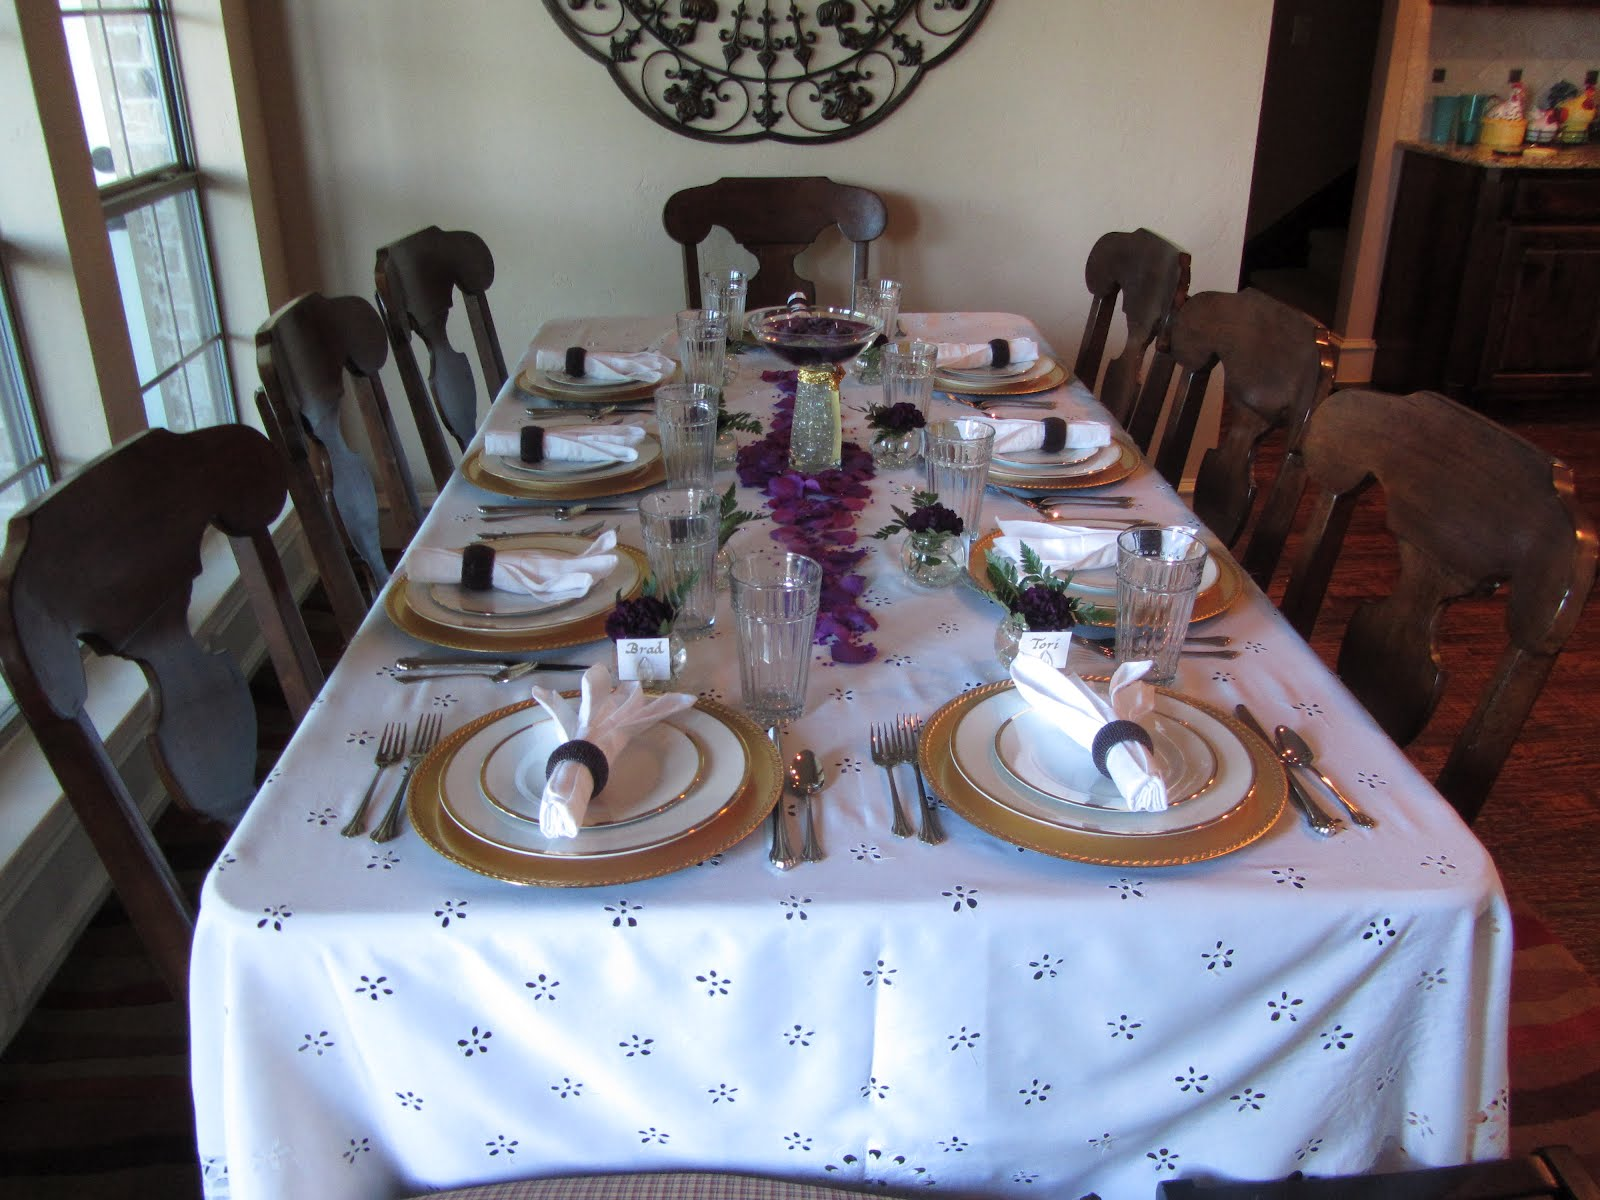 Creative Hospitality: Decorative Dinner Table Setting Ideas